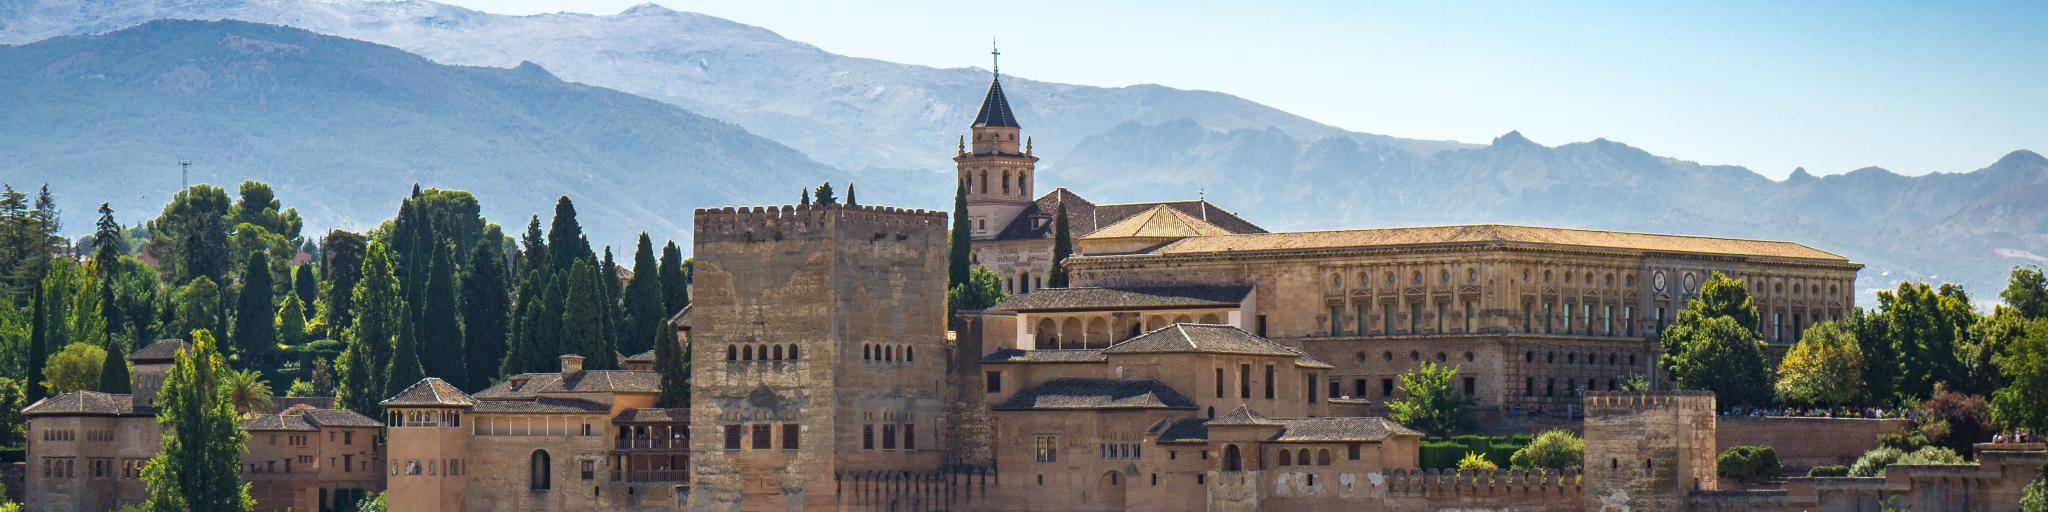 The Alhambra fortress towers over the city of Granada amid the Sierra Nevada mountains in Spain